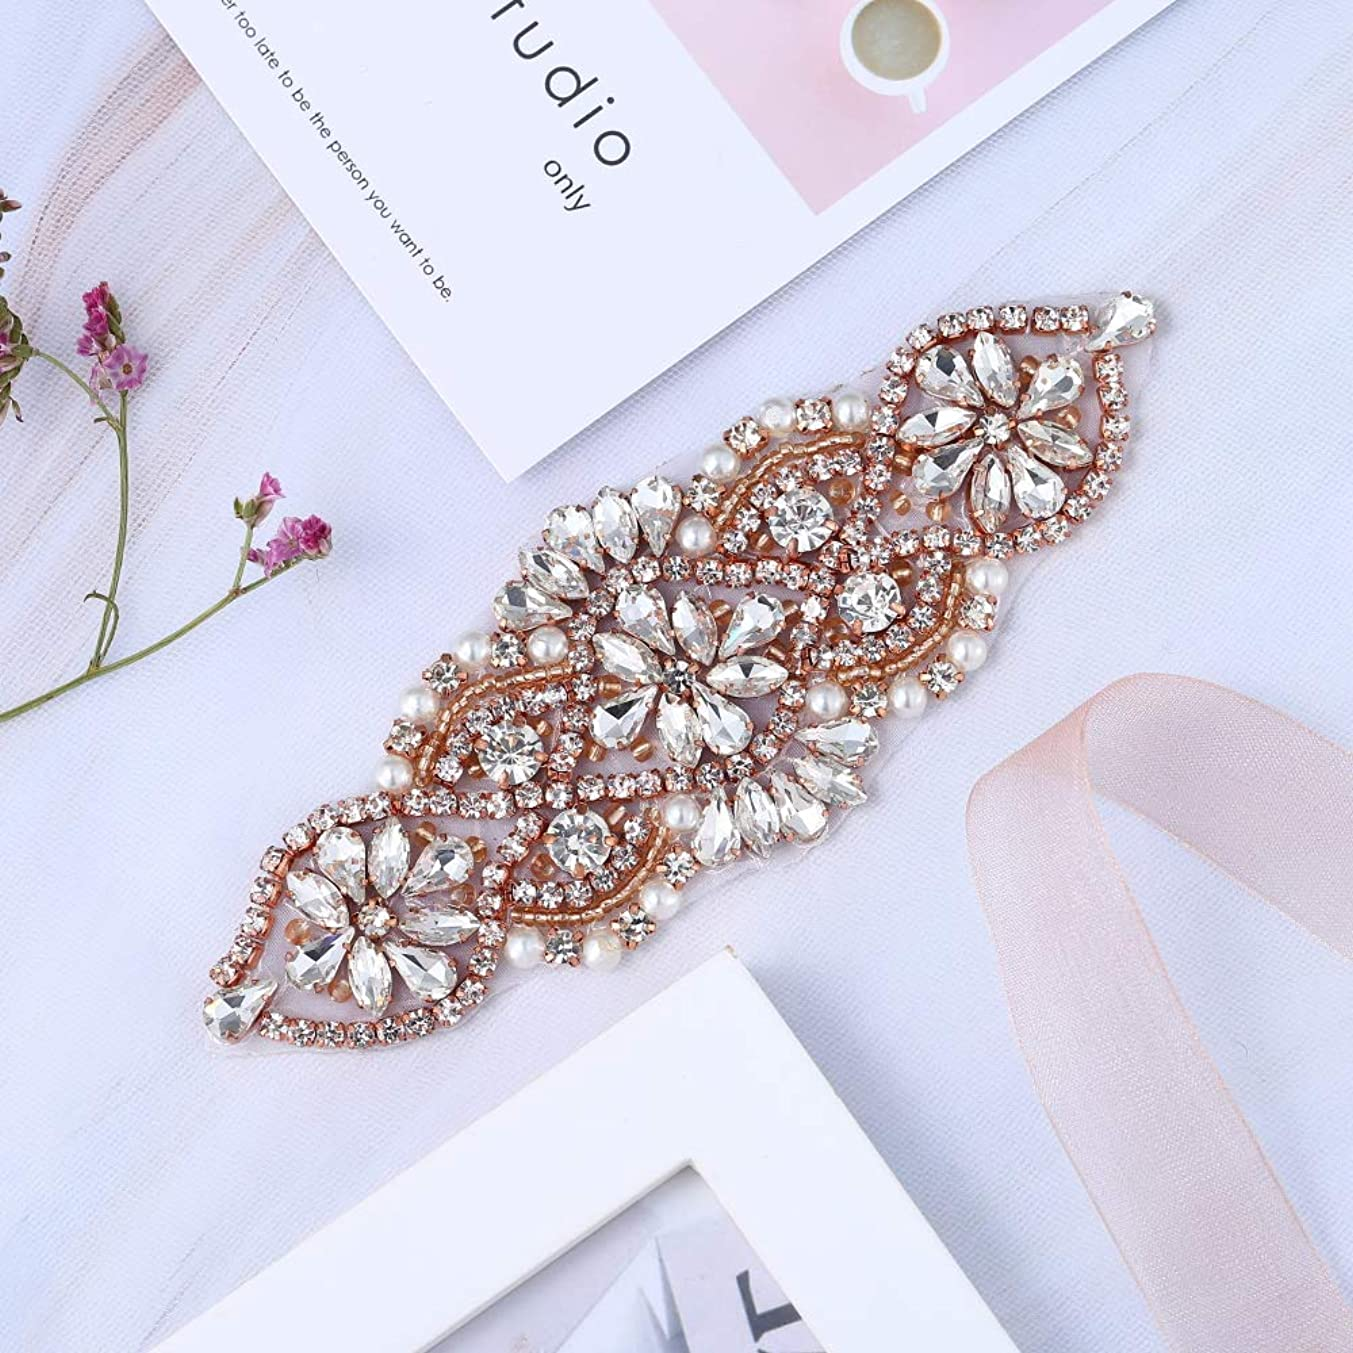 XINFANGXIU Rose Gold Small Beaded Crystal Decorative Patch Rhinestone Applique with Beaded Pearls Embellishments Sew Iron on Hot Fix for Bridal Wedding Dress Sash Belt Garters Headpieces